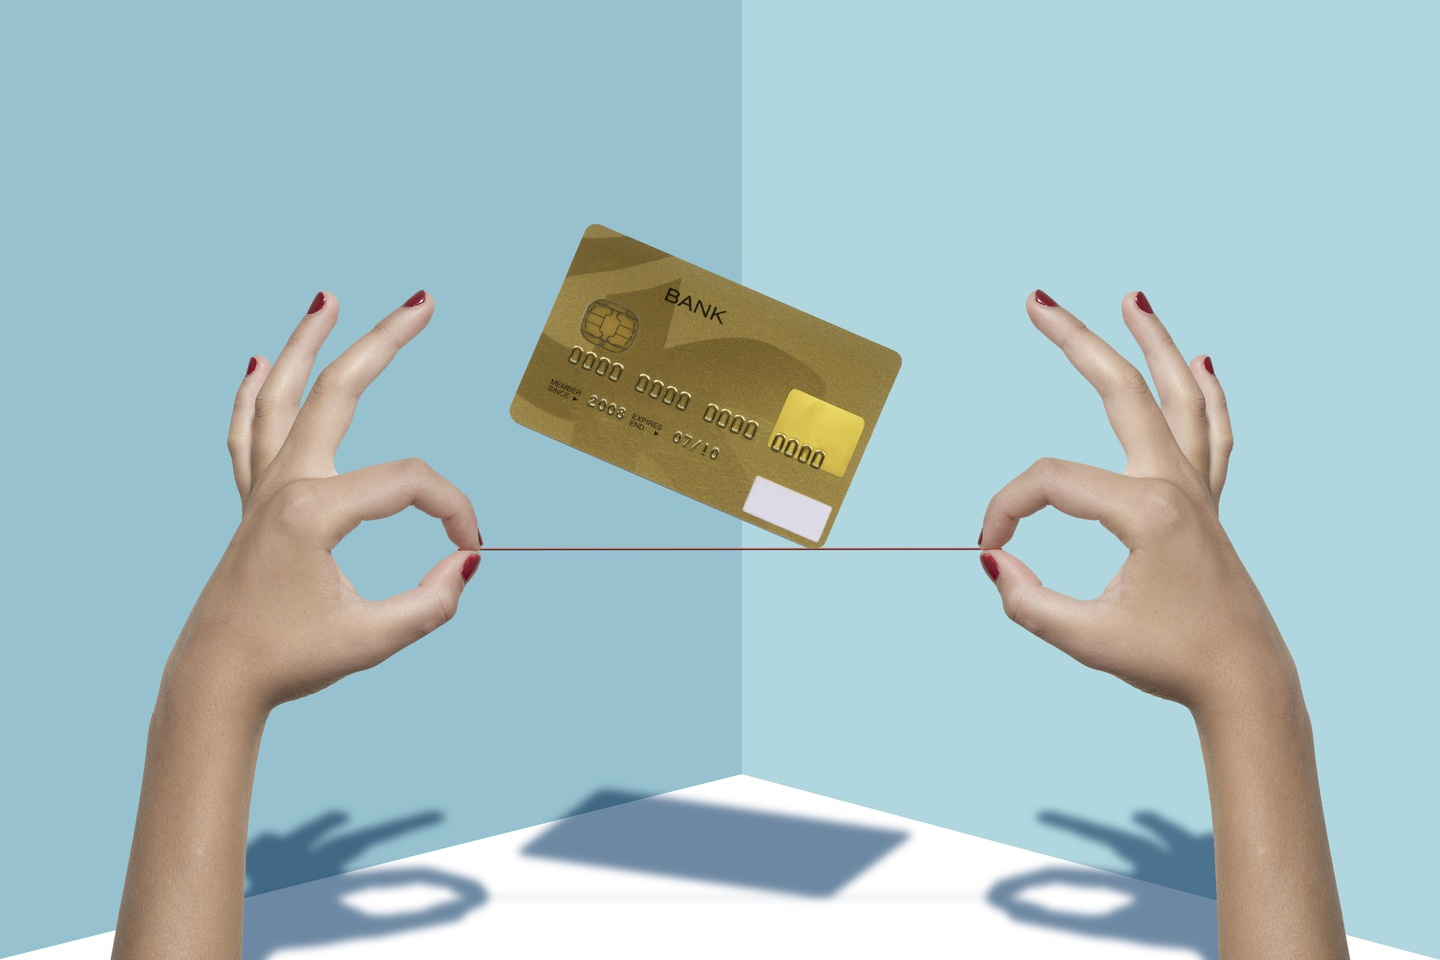 Woman's hands hold a Credit Card balanced on a thread